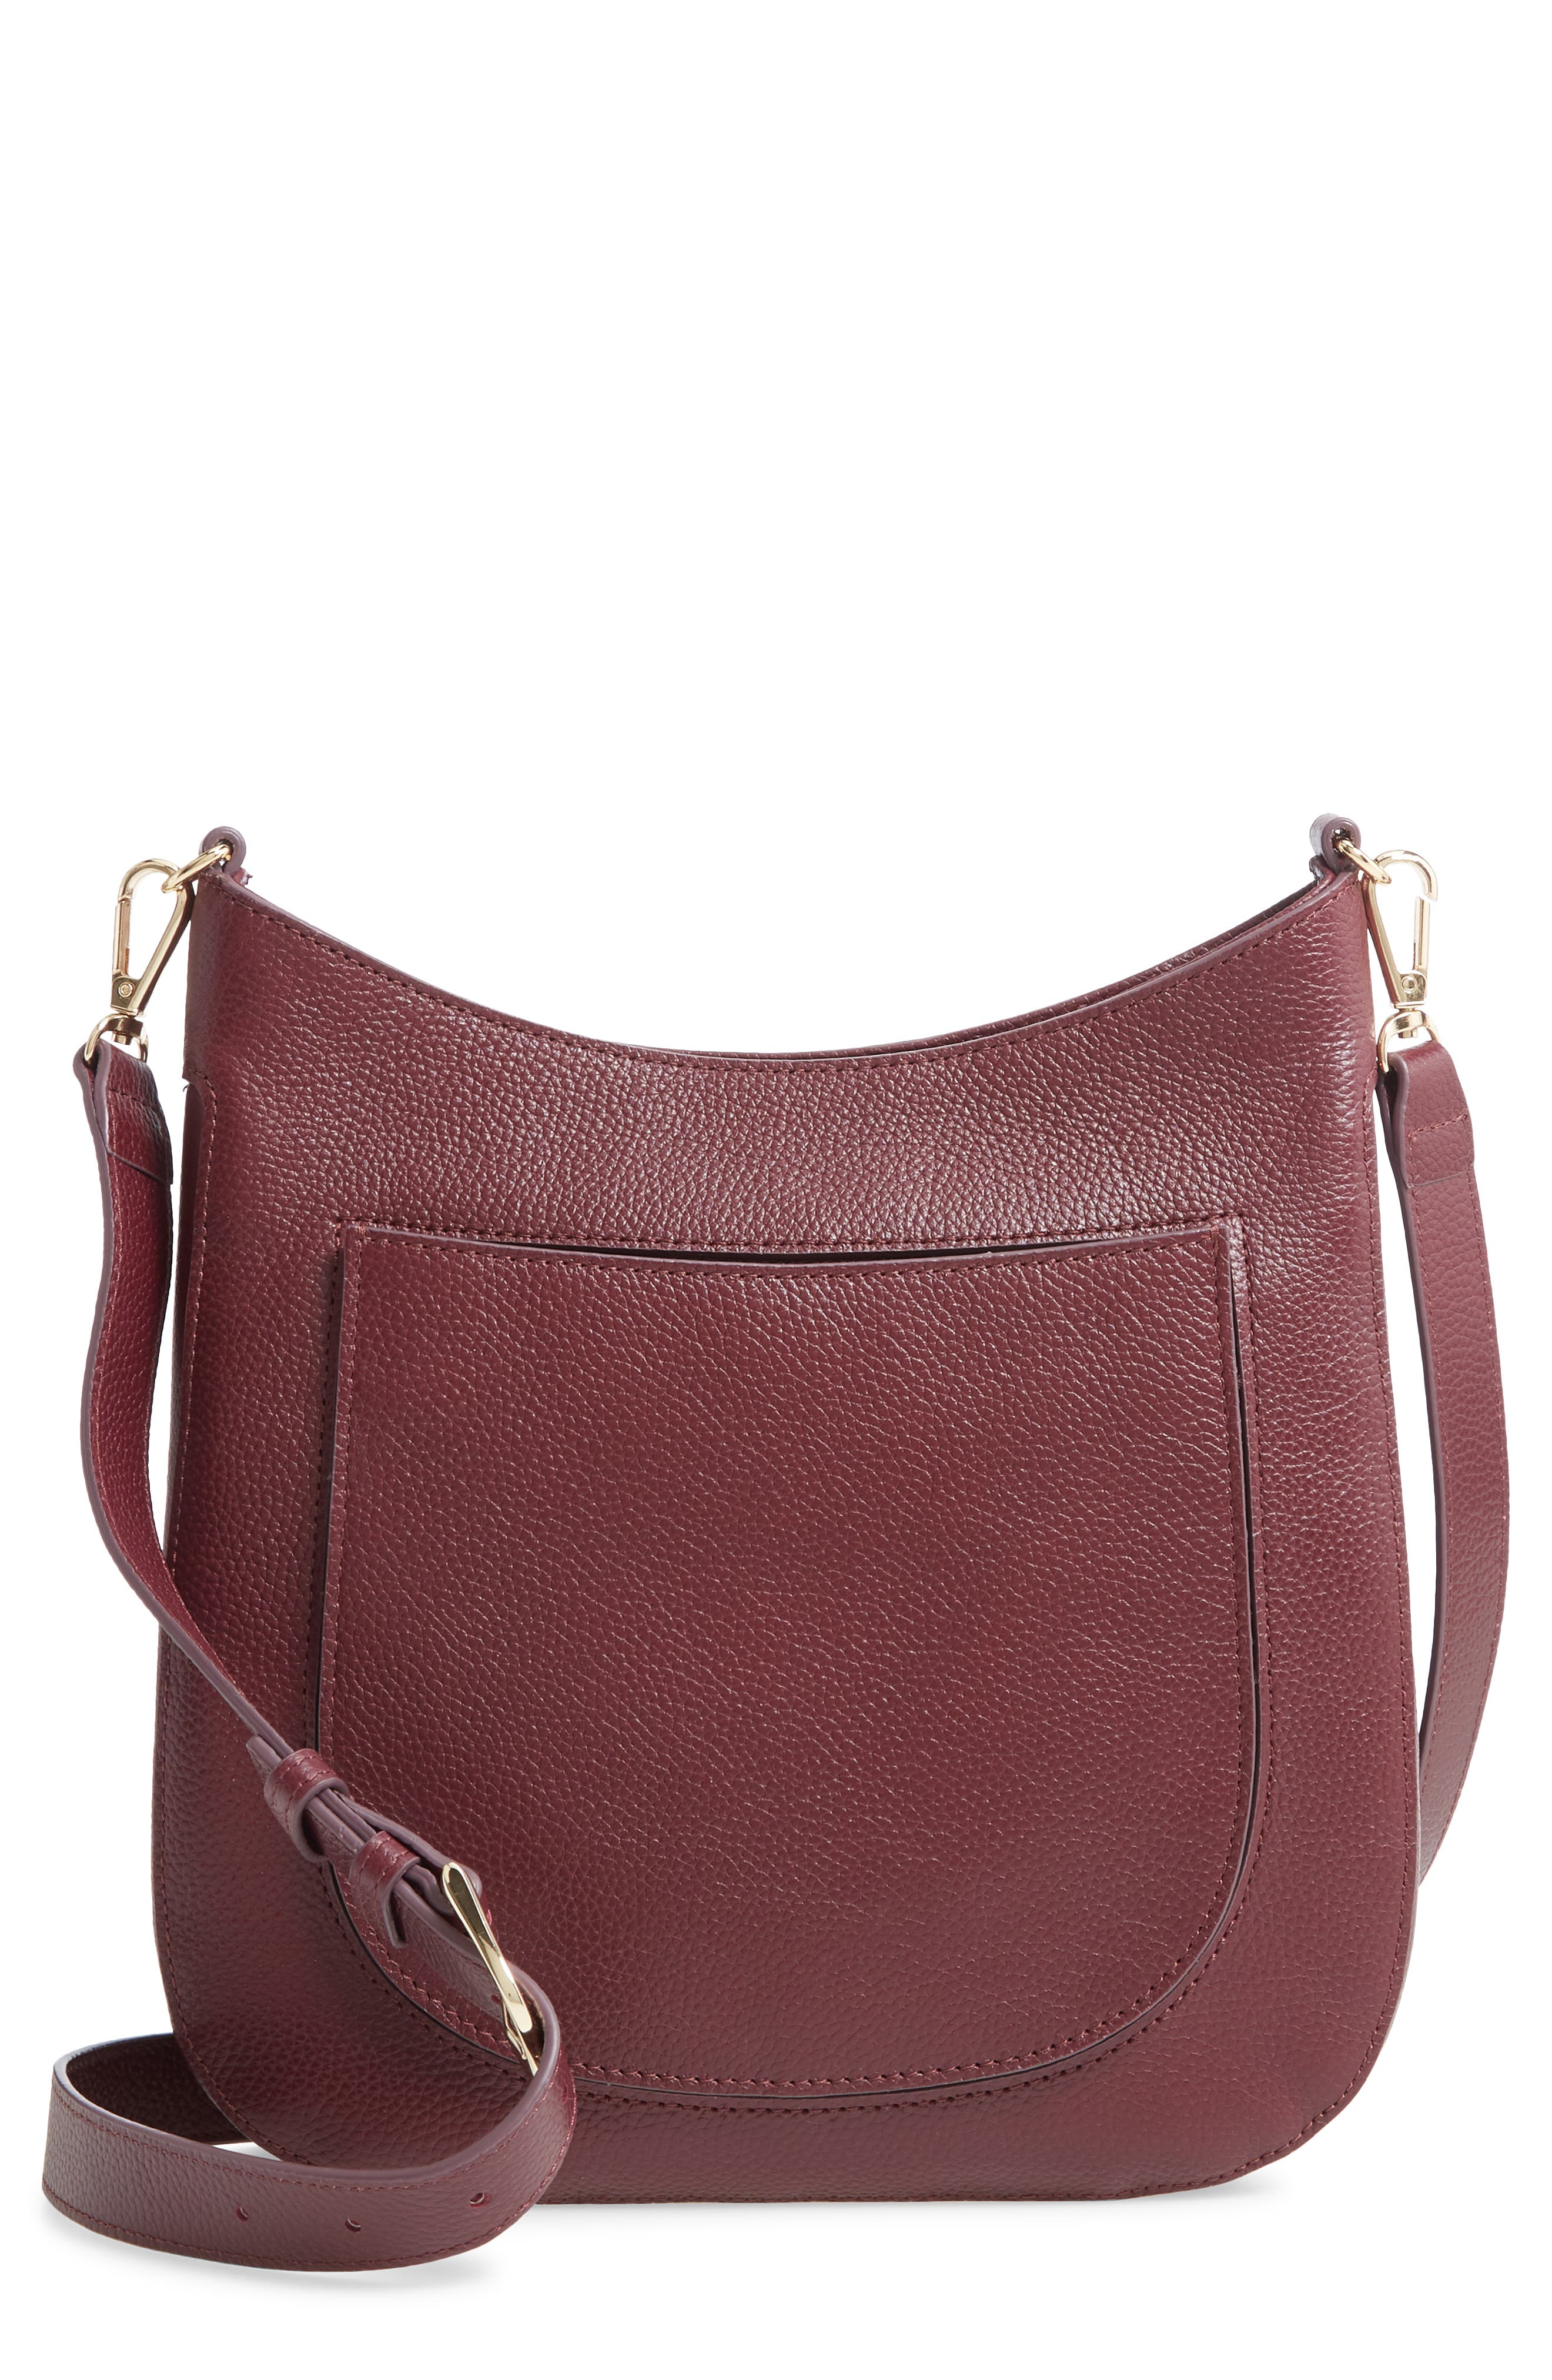 Richly grained calfskin leather styles a timeless crossbody bag designed with just enough room for organizing essentials. Style Name: Nordstrom Medium Madrona Leather Crossbody Bag. Style Number: 6015819. Available in stores.